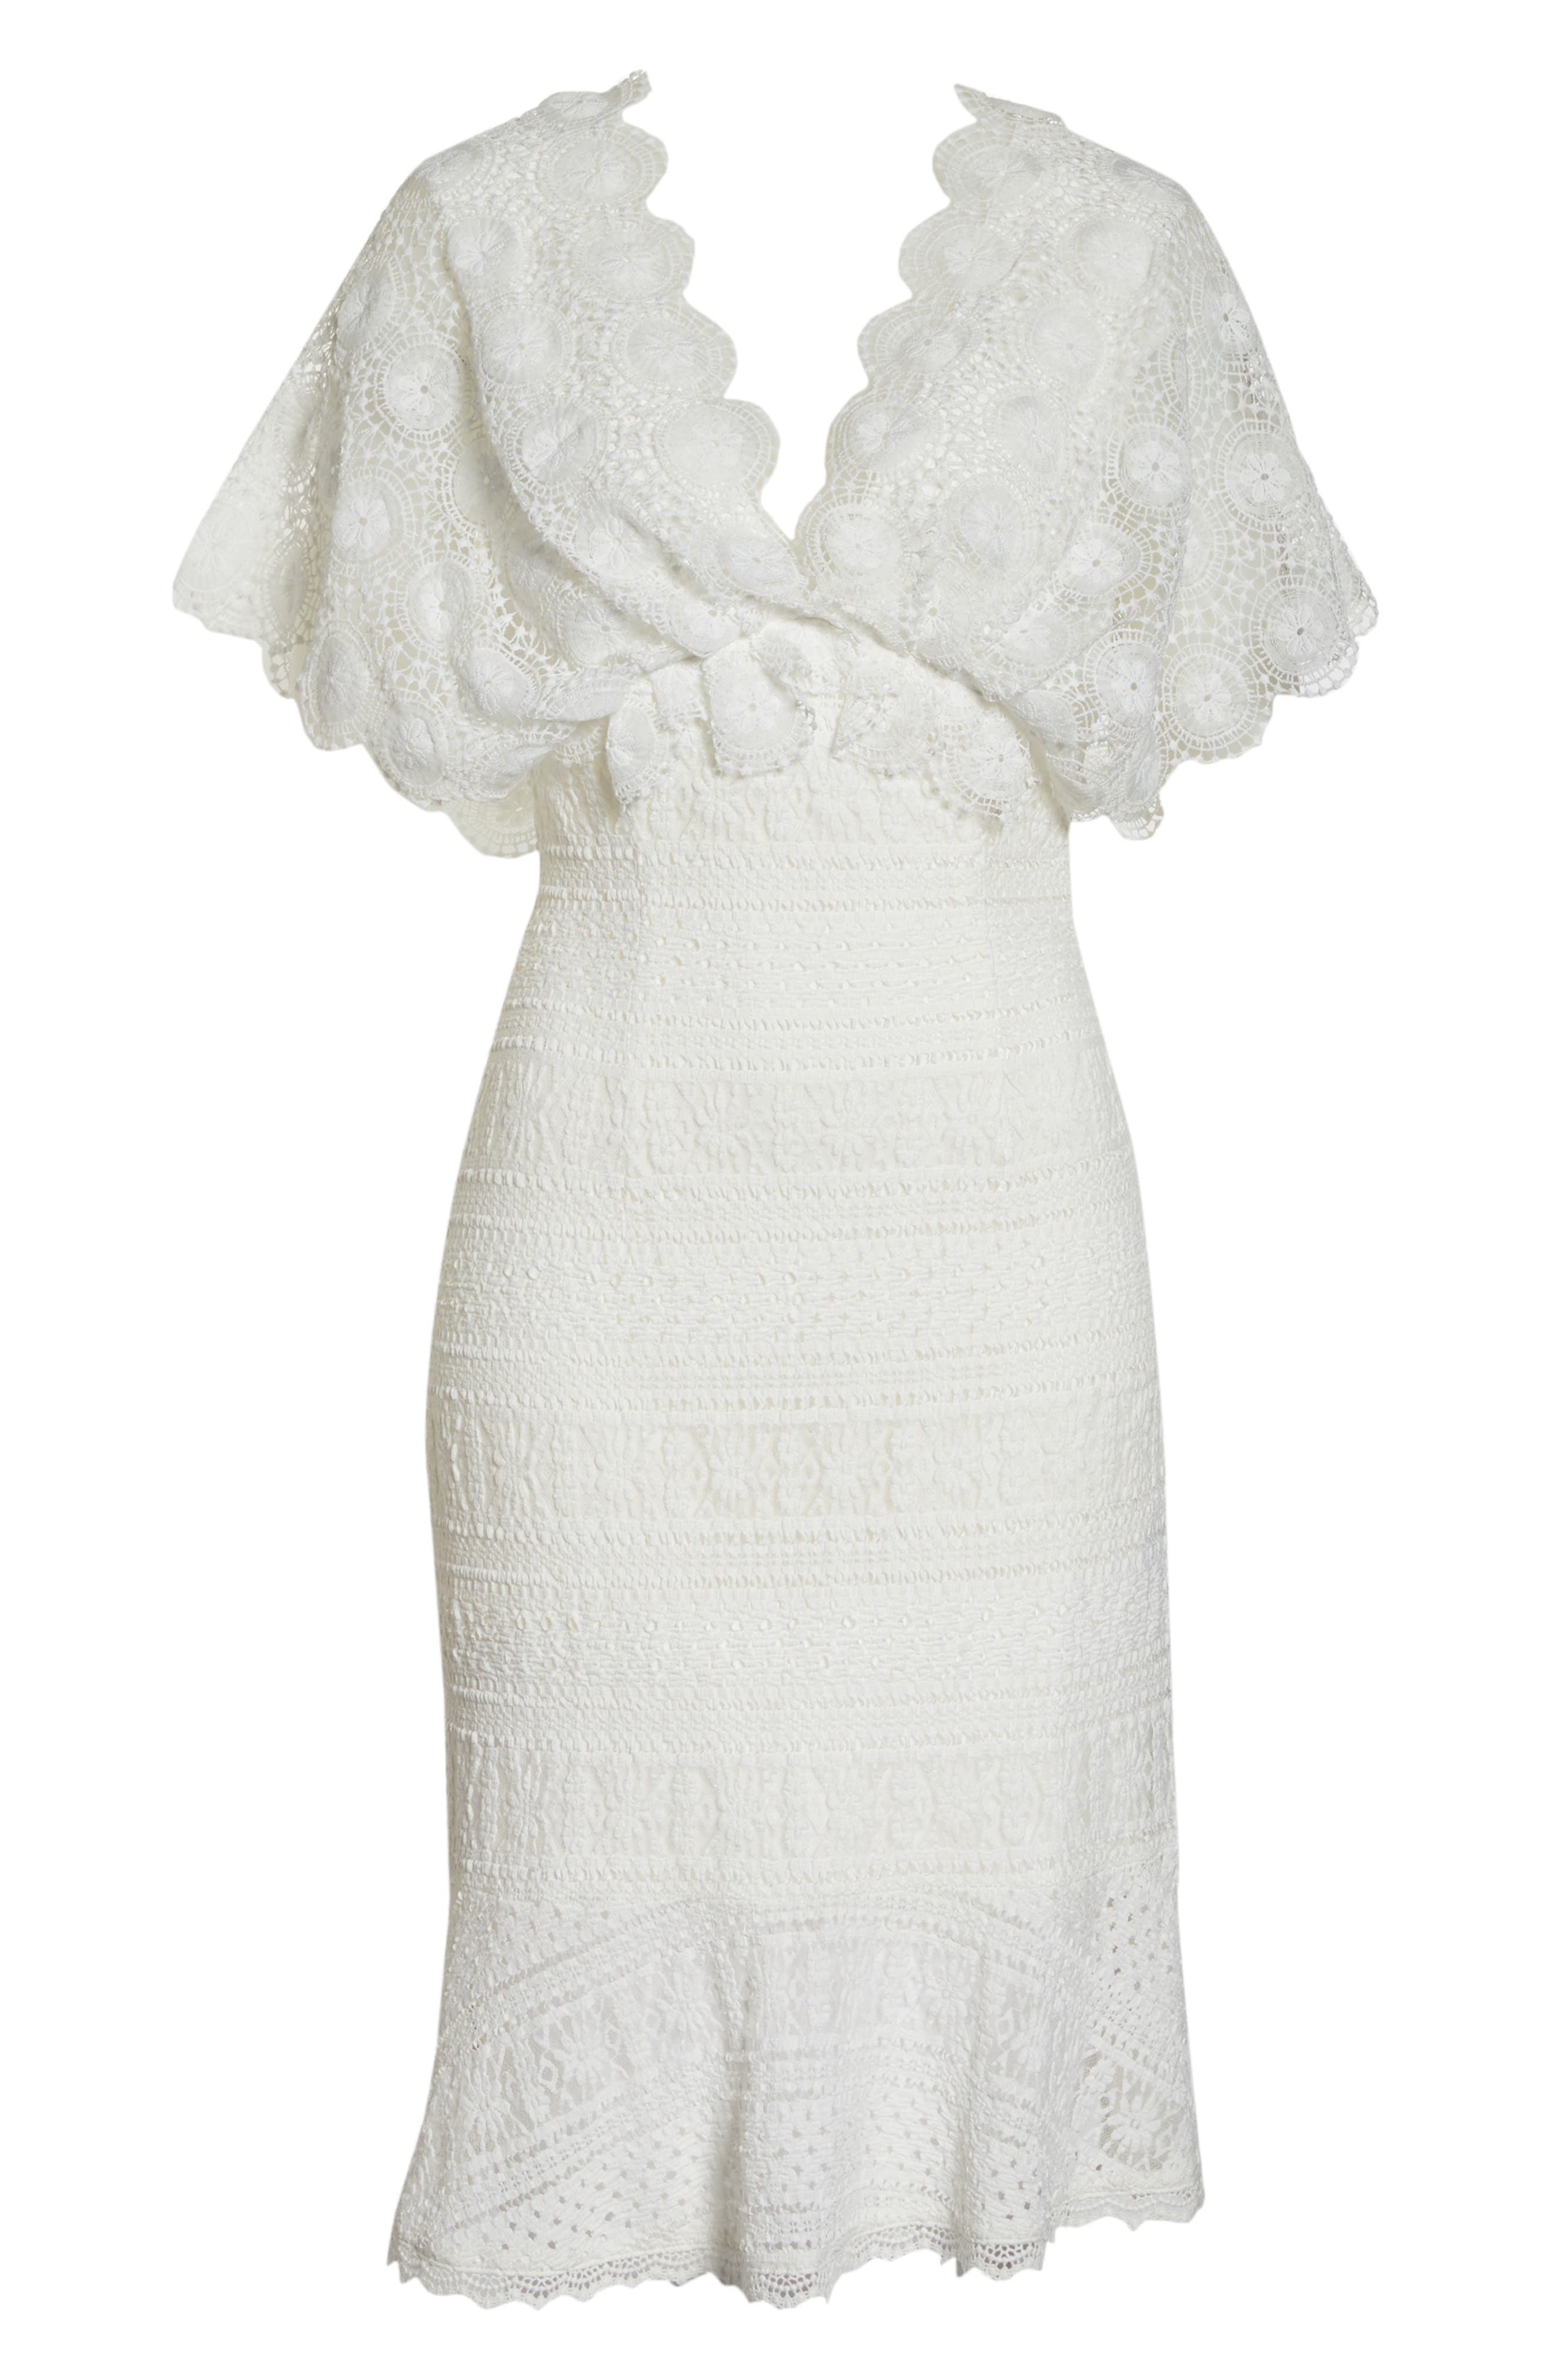 Mavis Scalloped Lace Dress,                             Alternate thumbnail 7, color,                             Off White